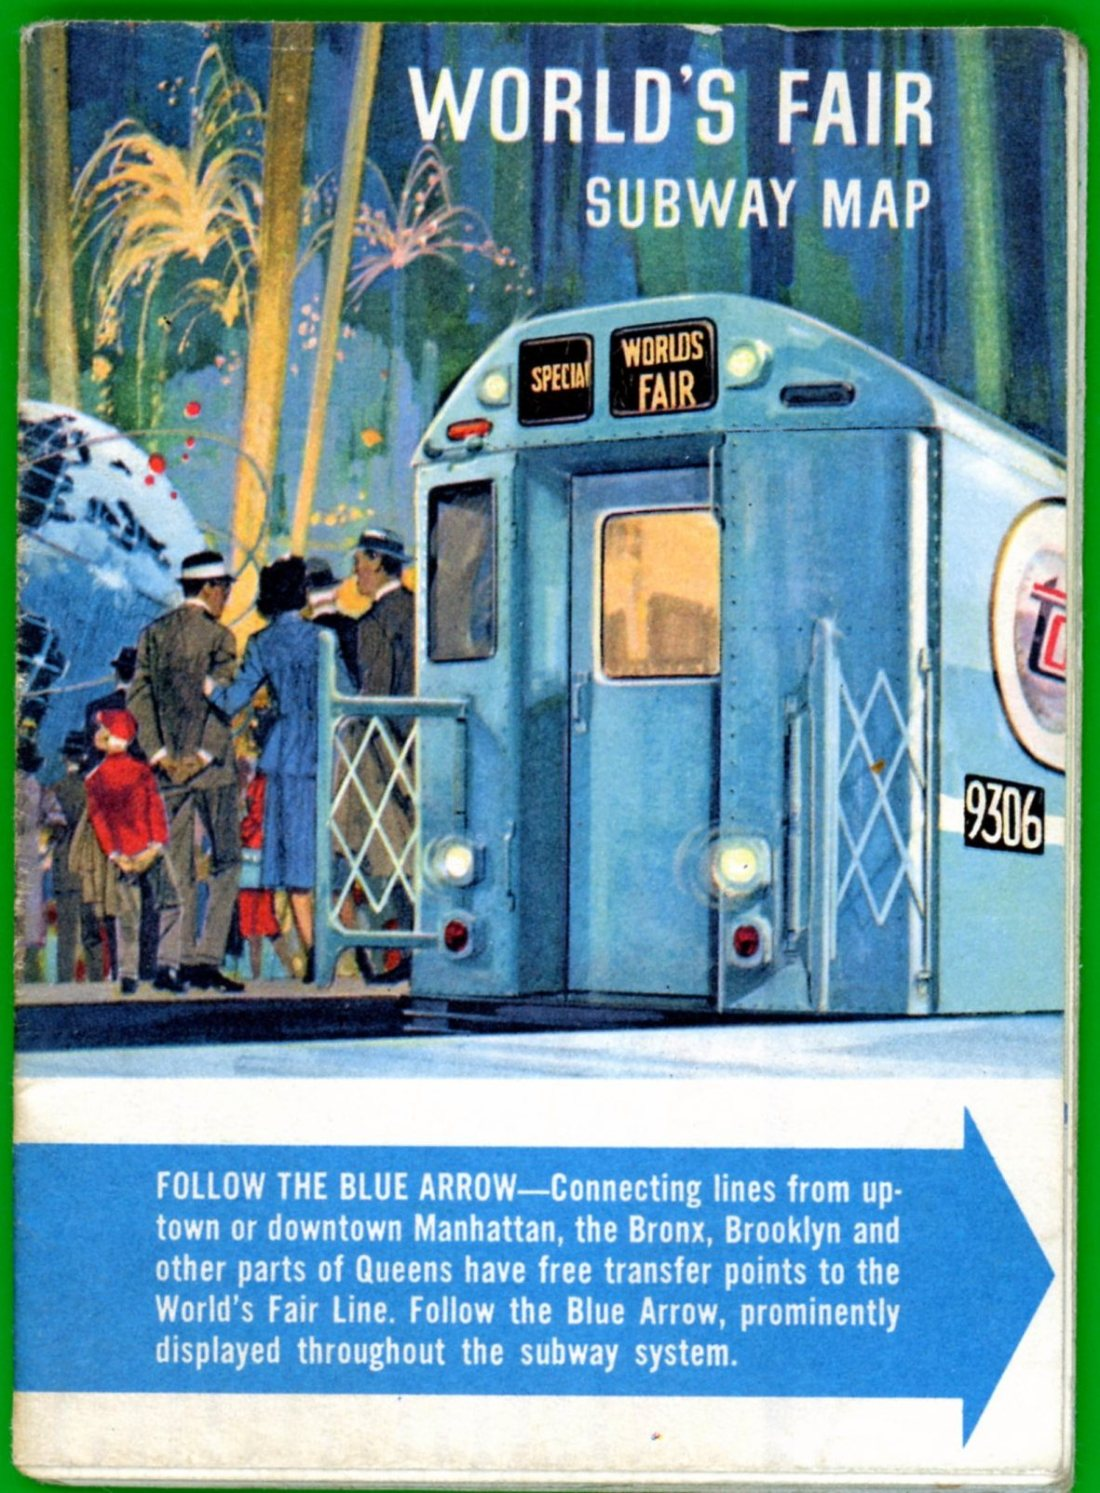 1965 04 26 World Fair transit map 1